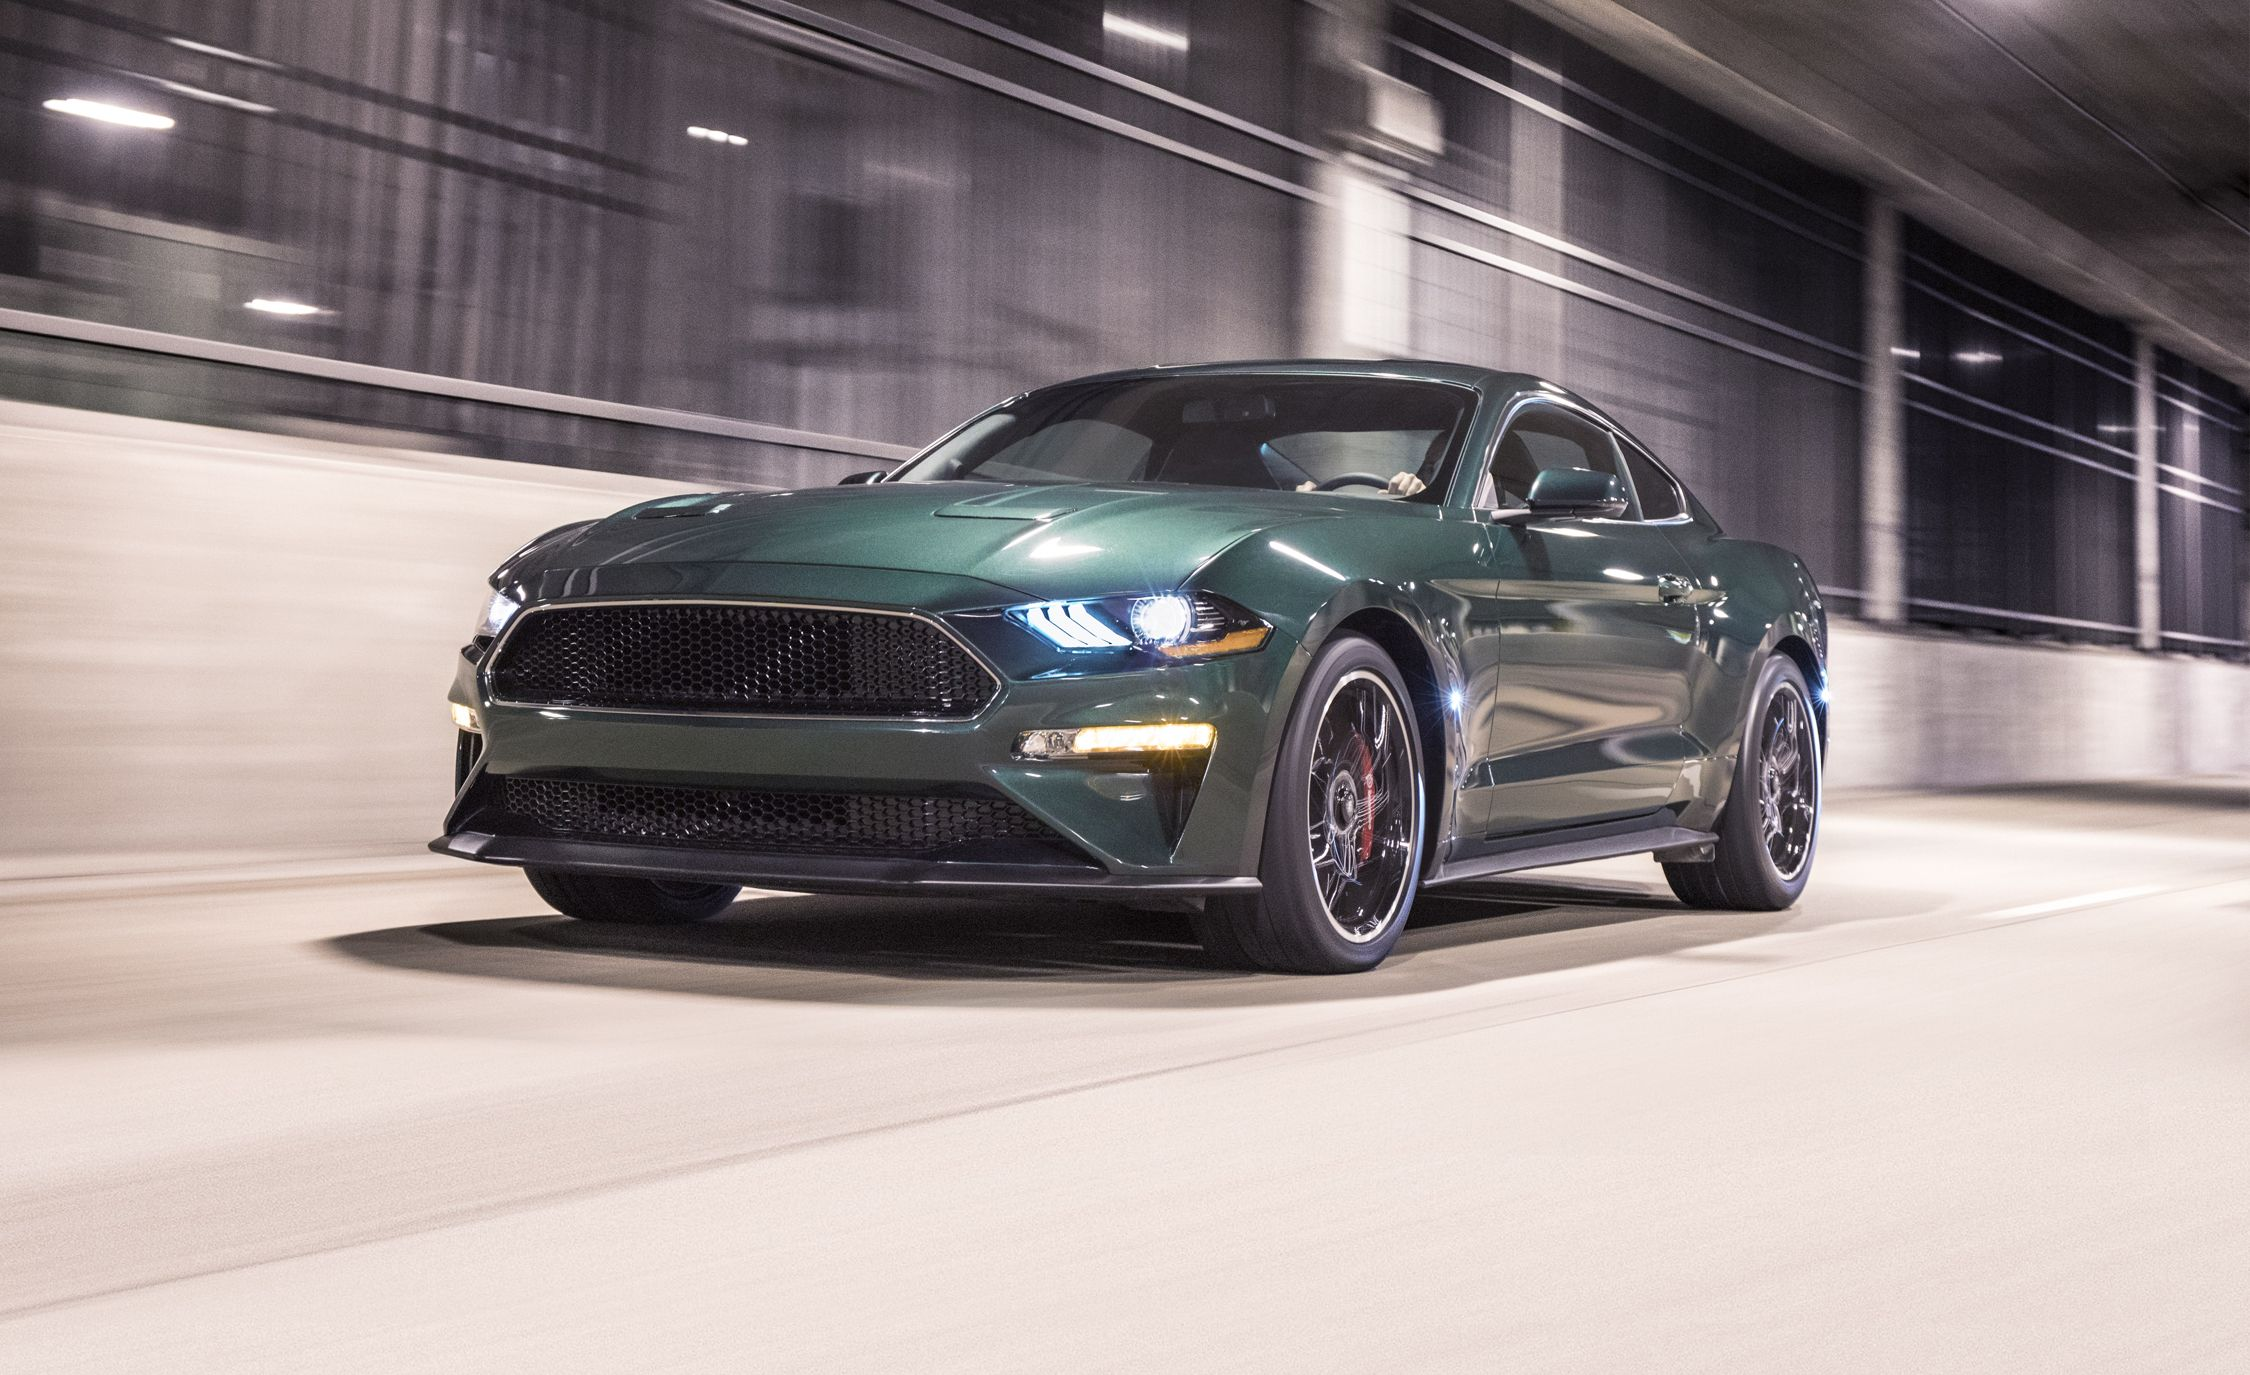 2019 Ford Mustang Bullitt Photos and Info | News | Car and Driver